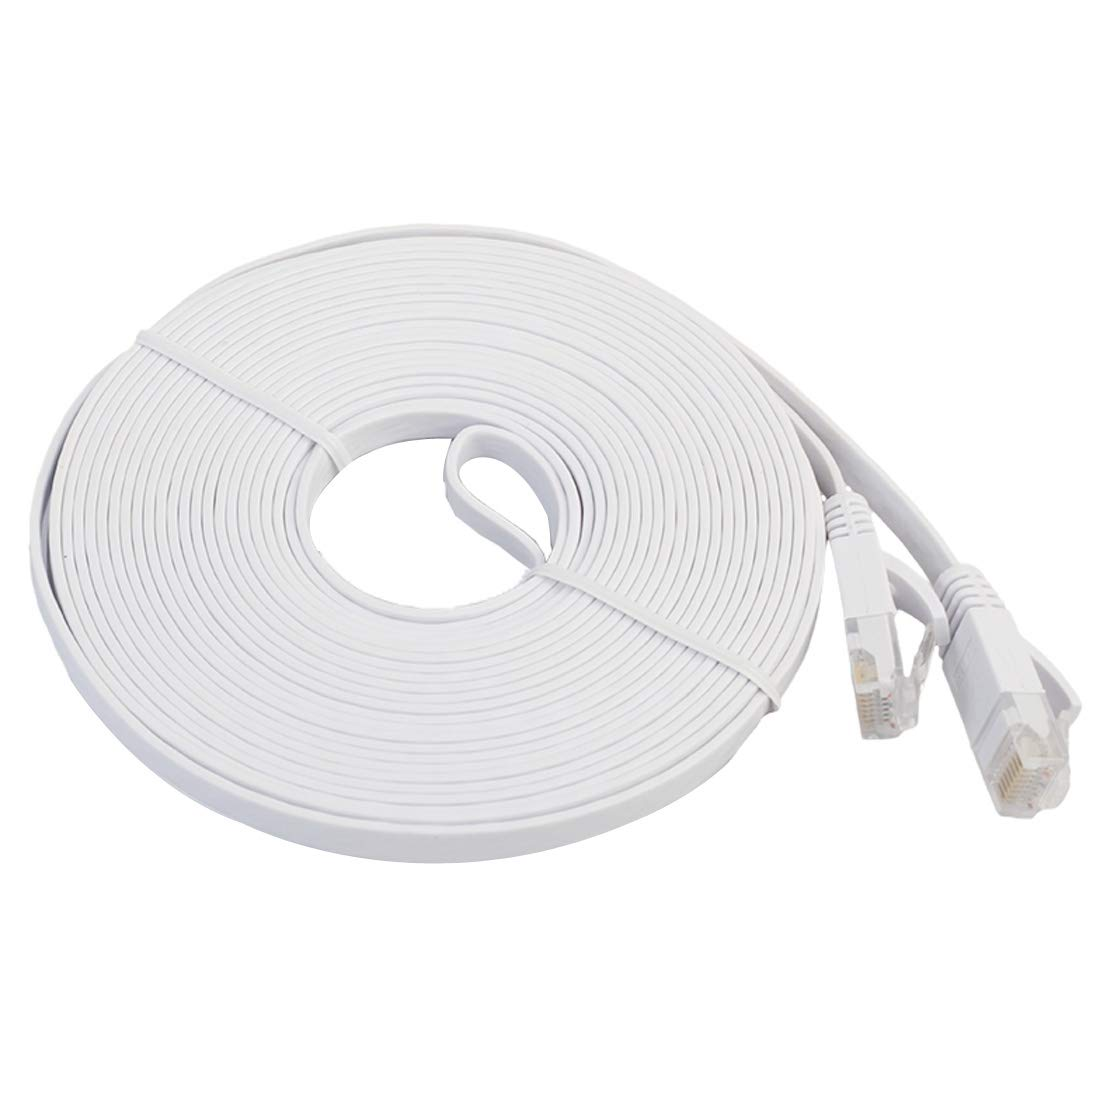 JINYANG 10m CAT6 Ultra-Thin Flat Ethernet Network LAN Cable Patch Lead RJ45 Color : White Black